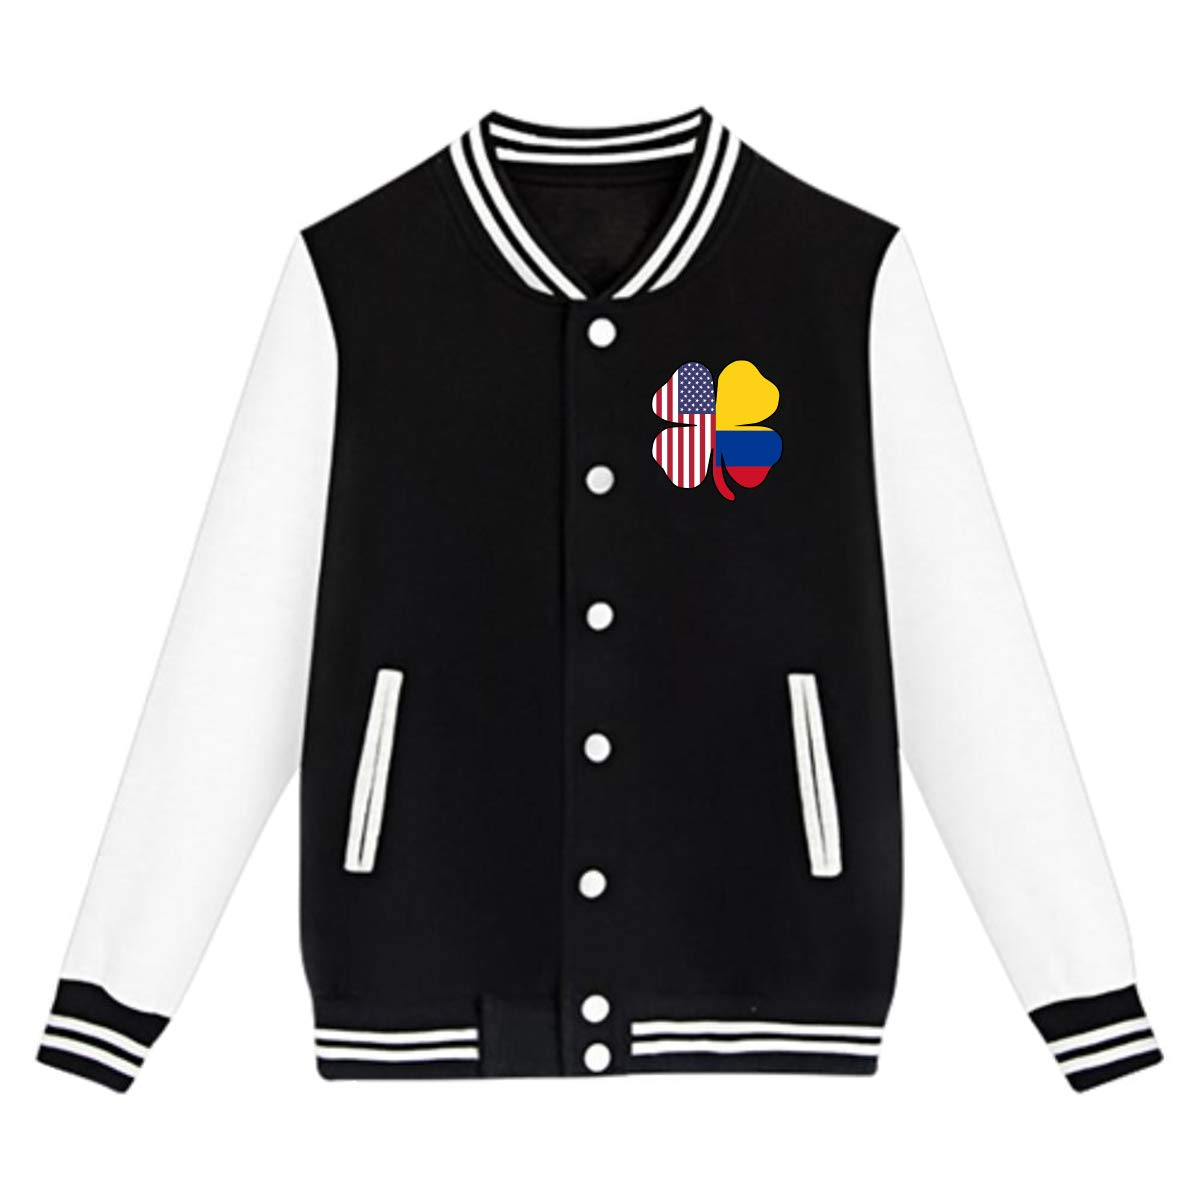 NJKM5MJ Unisex Youth Baseball Uniform Jacket American Colombia Flag Shamrock Sweater Sport Coat